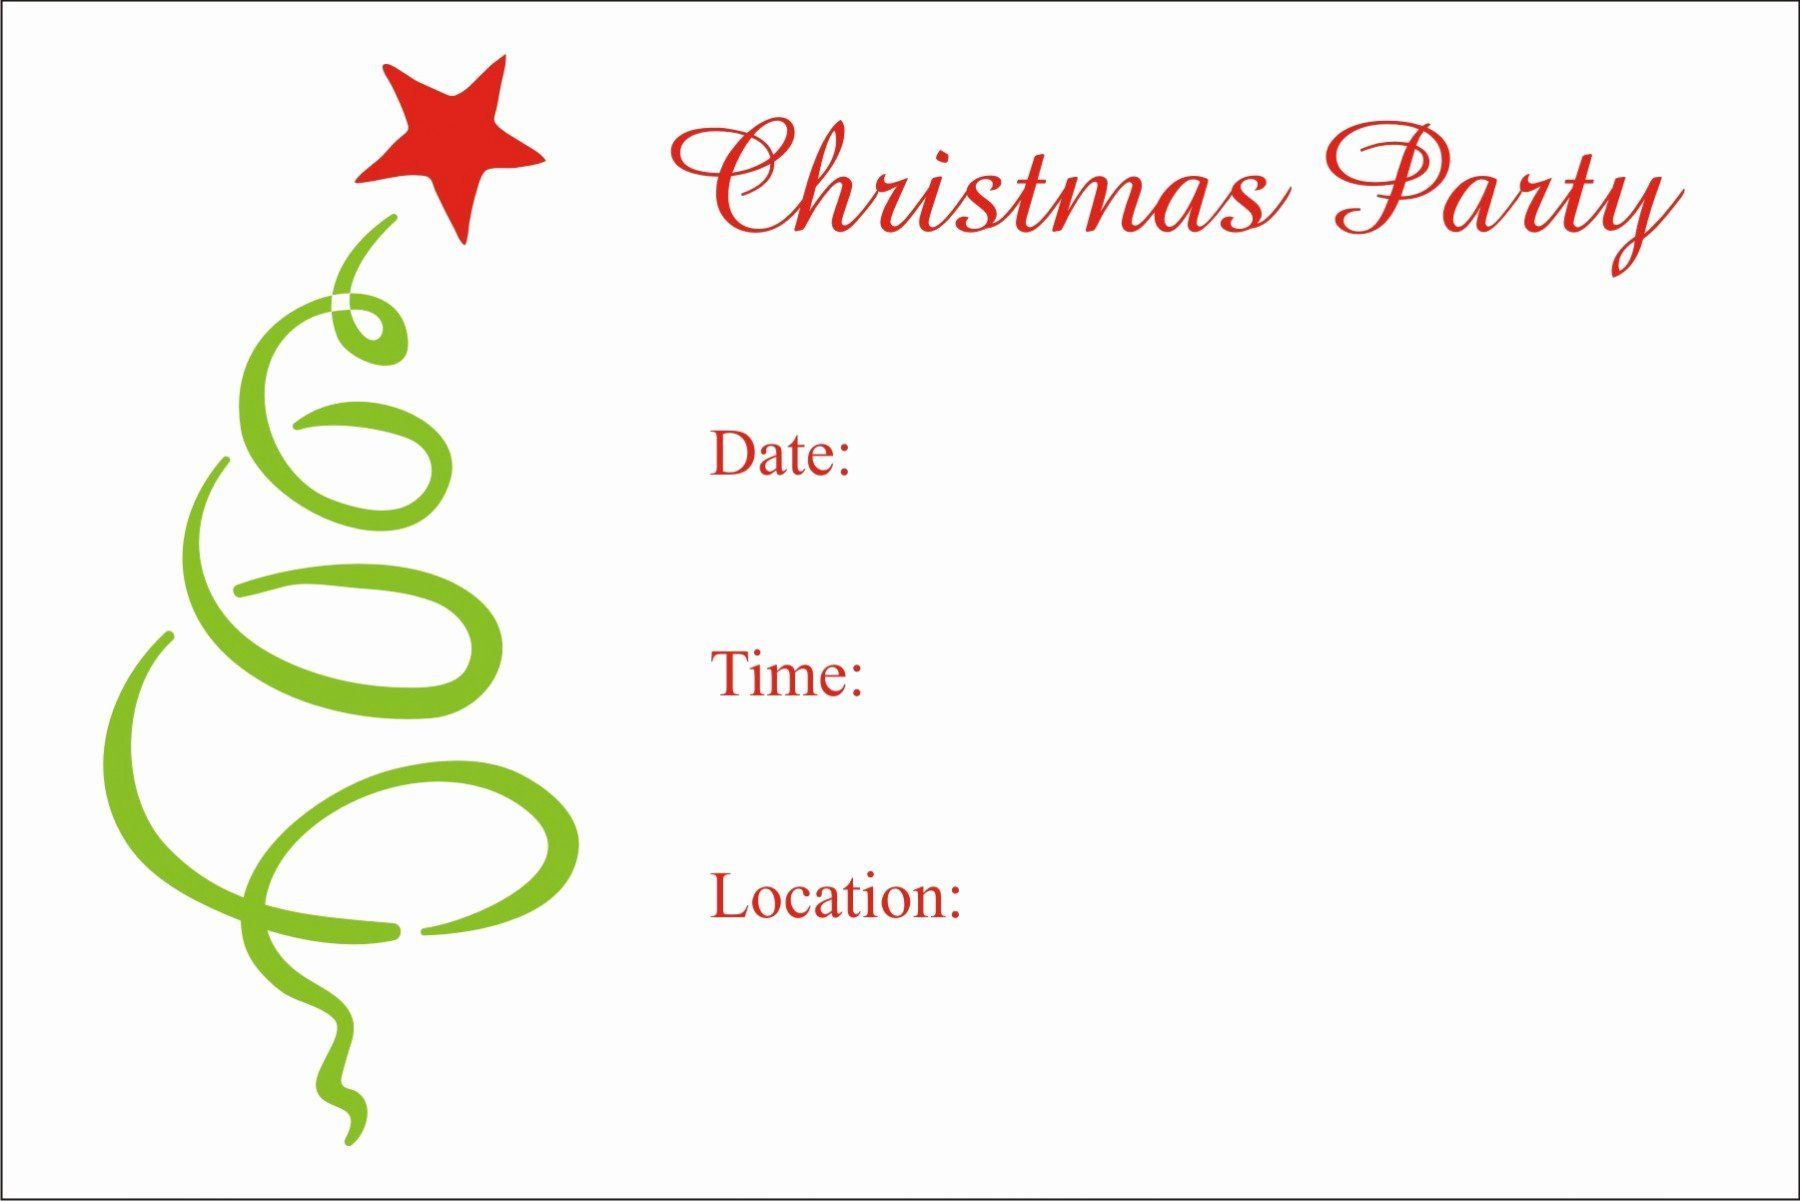 002 Rare Christma Party Invite Template High Resolution  Microsoft Word Free Download Holiday Invitation PowerpointFull